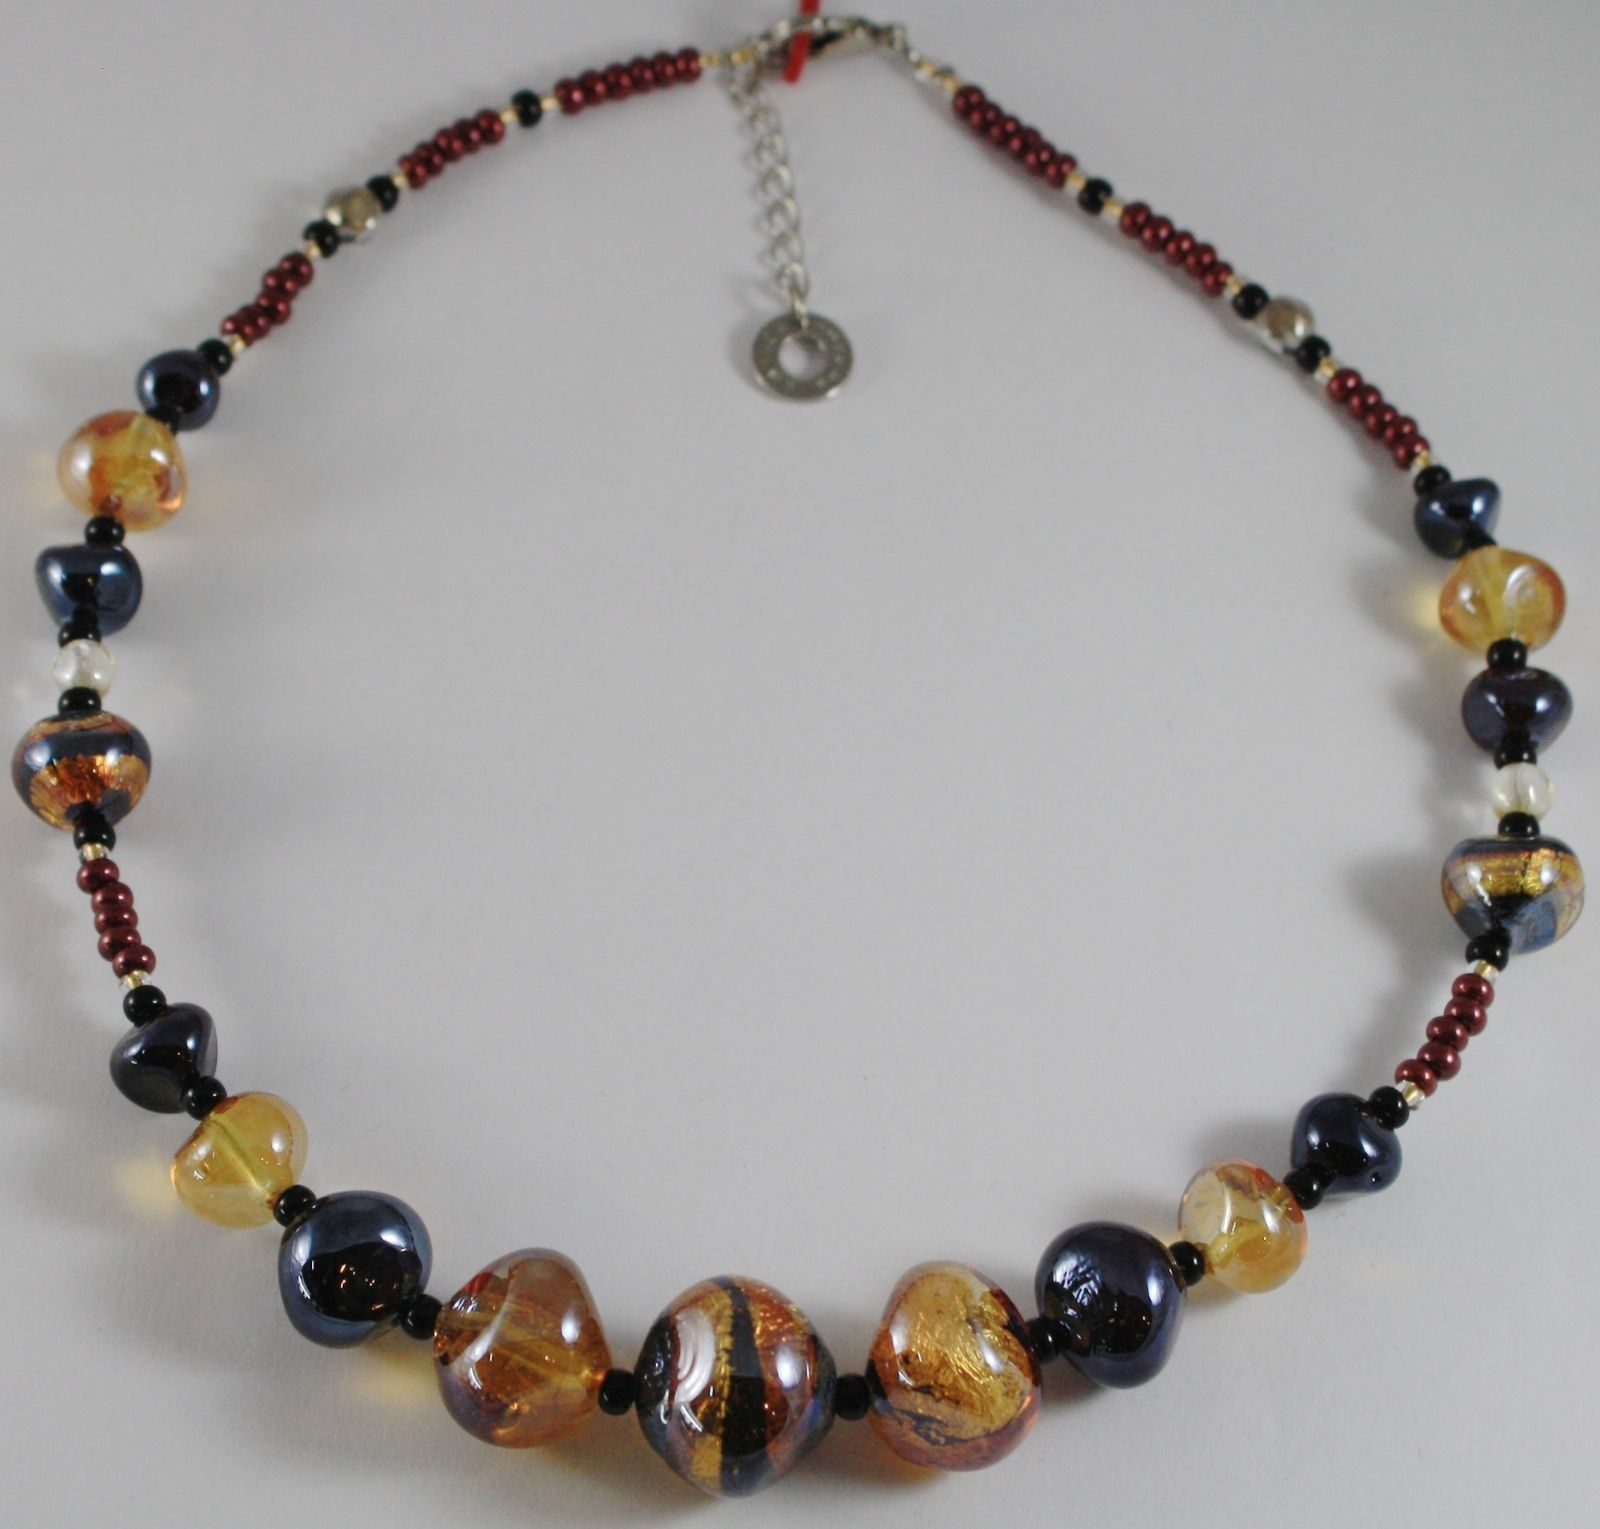 NECKLACE ANTICA MURRINA VENEZIA WITH MURANO GLASS BEIGE BROWN AMBER CO984A10